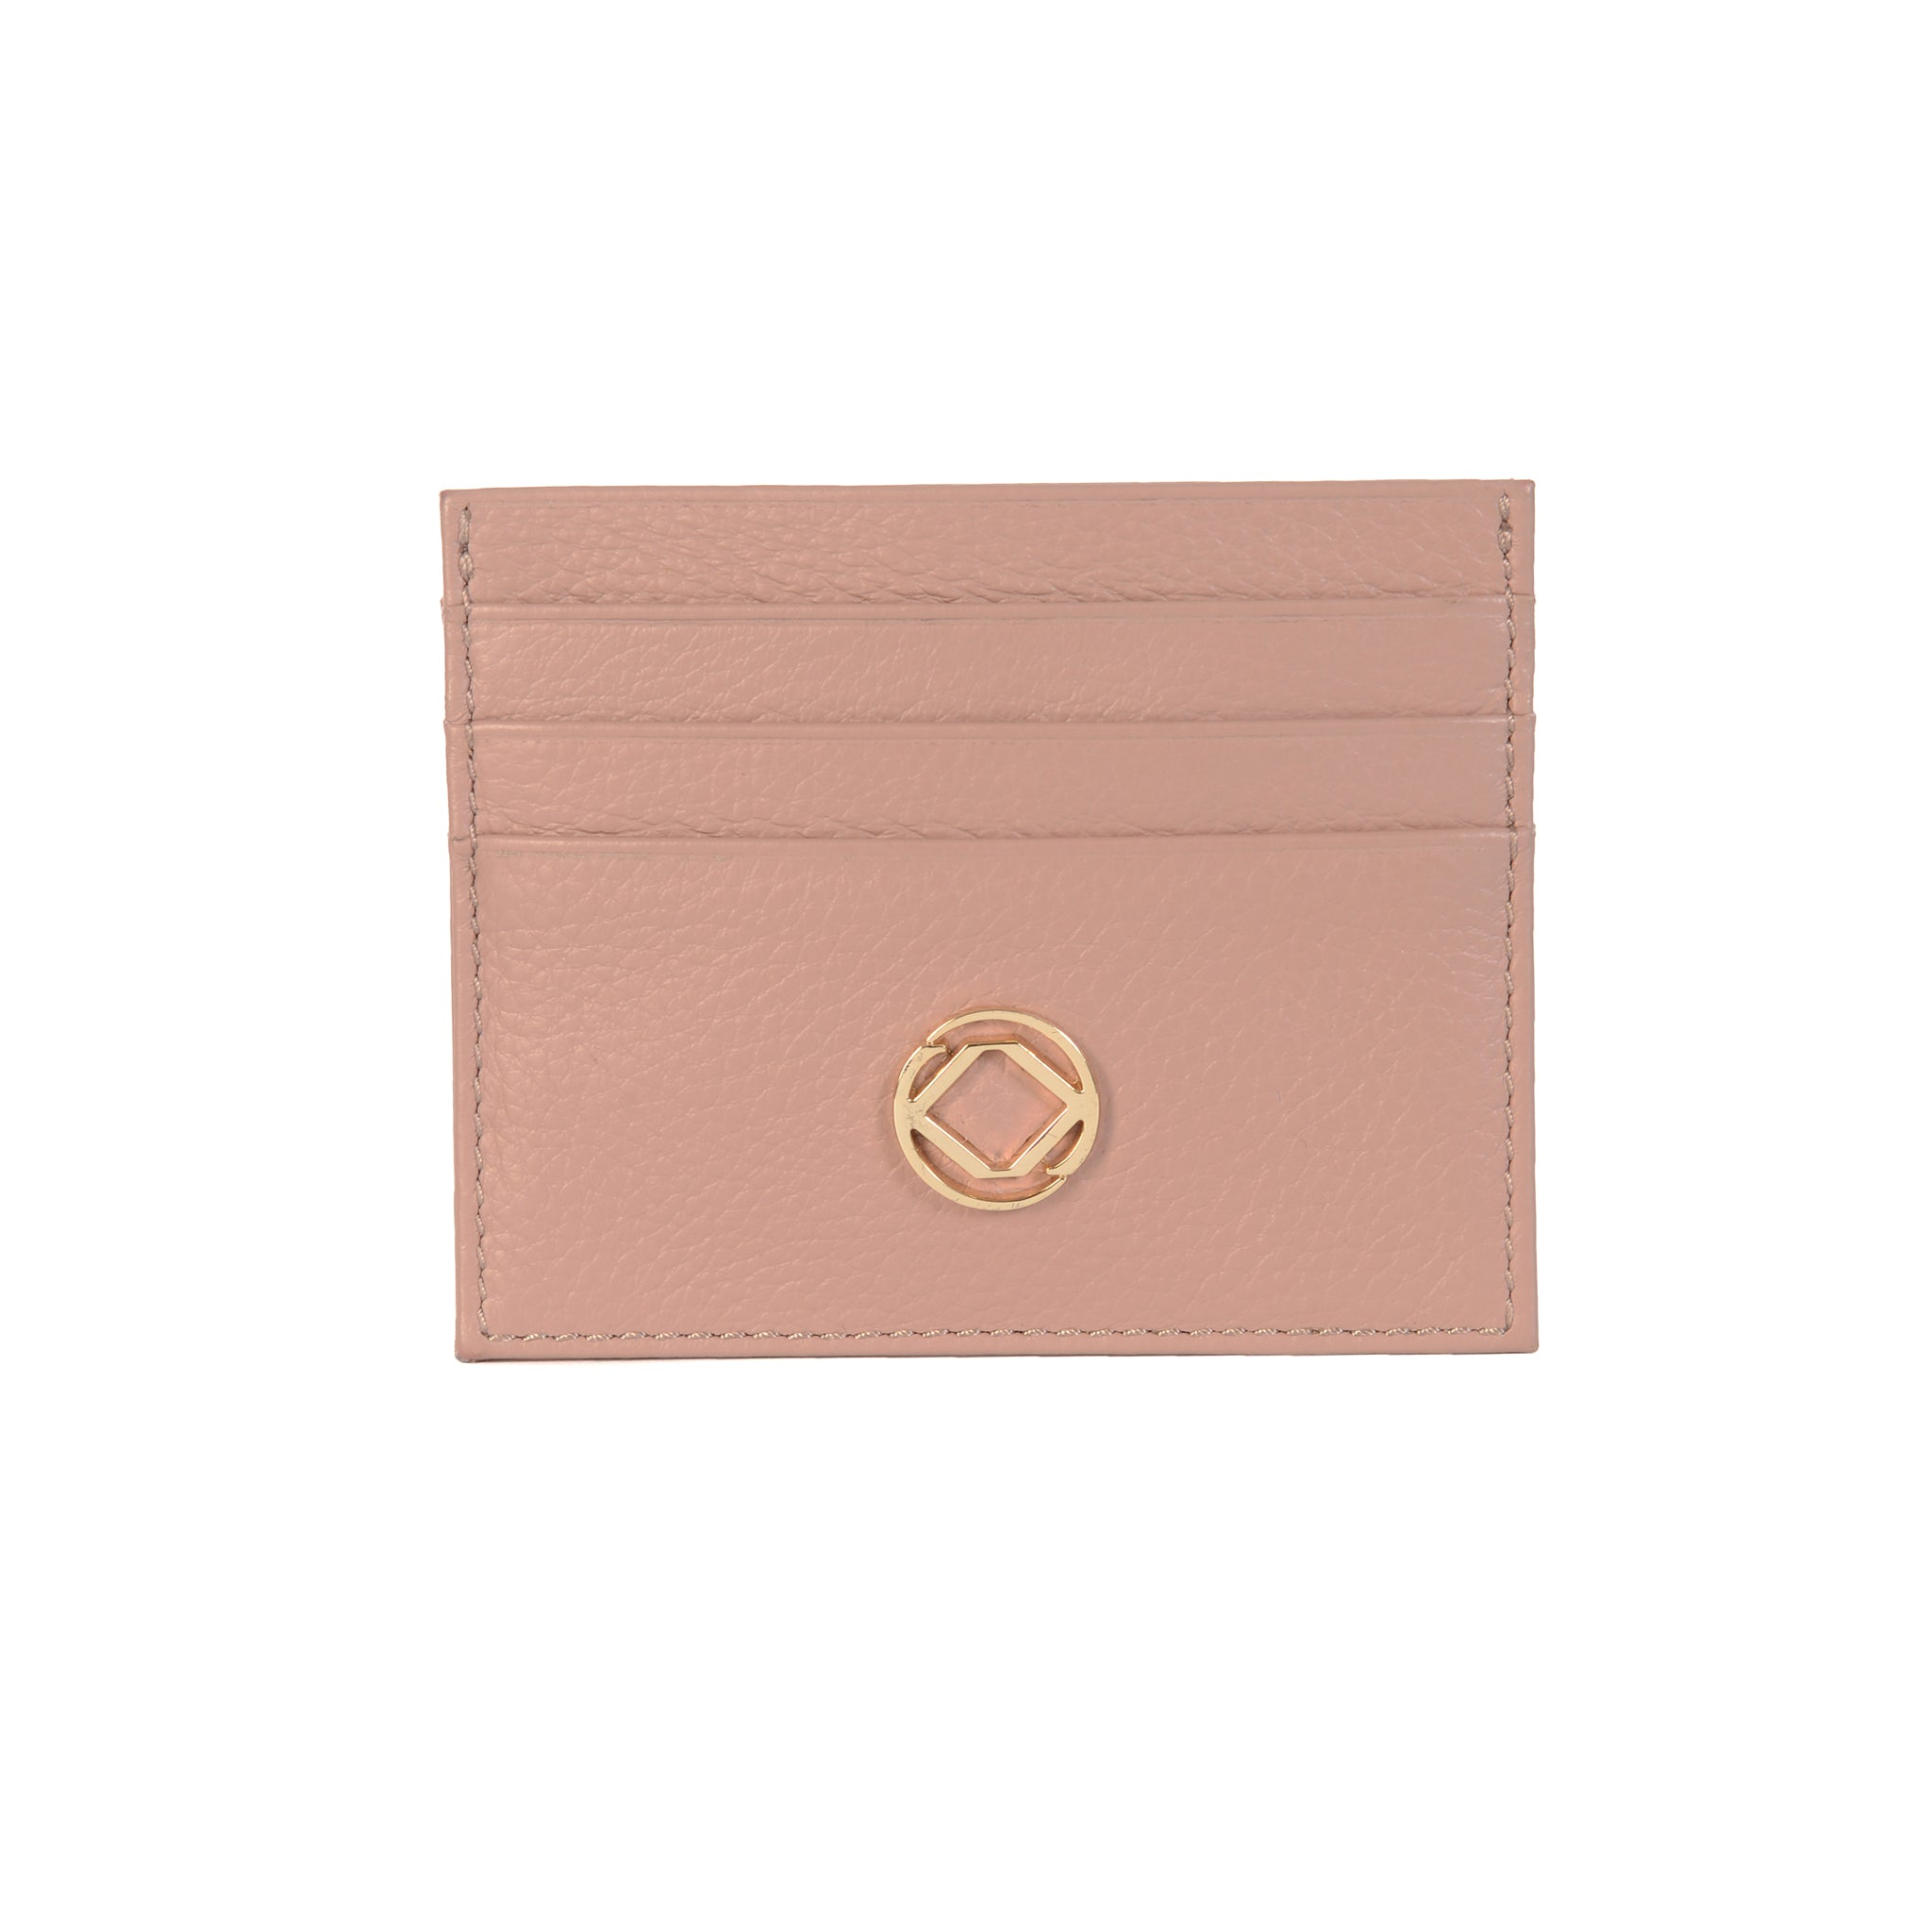 Rosa Leather Business Card Holder - Personalised